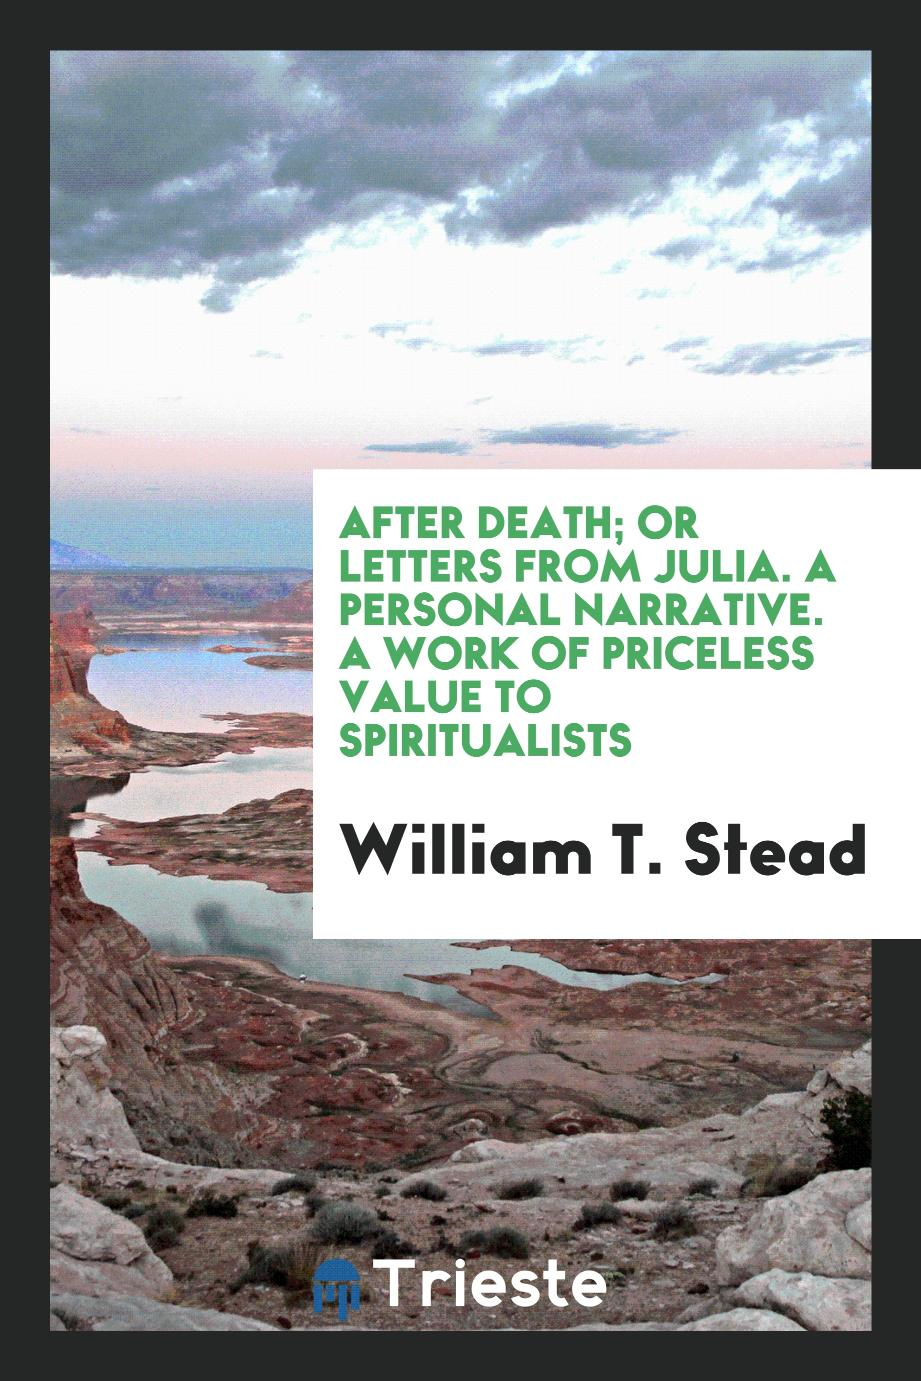 After Death; Or Letters from Julia. A Personal Narrative. A Work of Priceless Value to Spiritualists